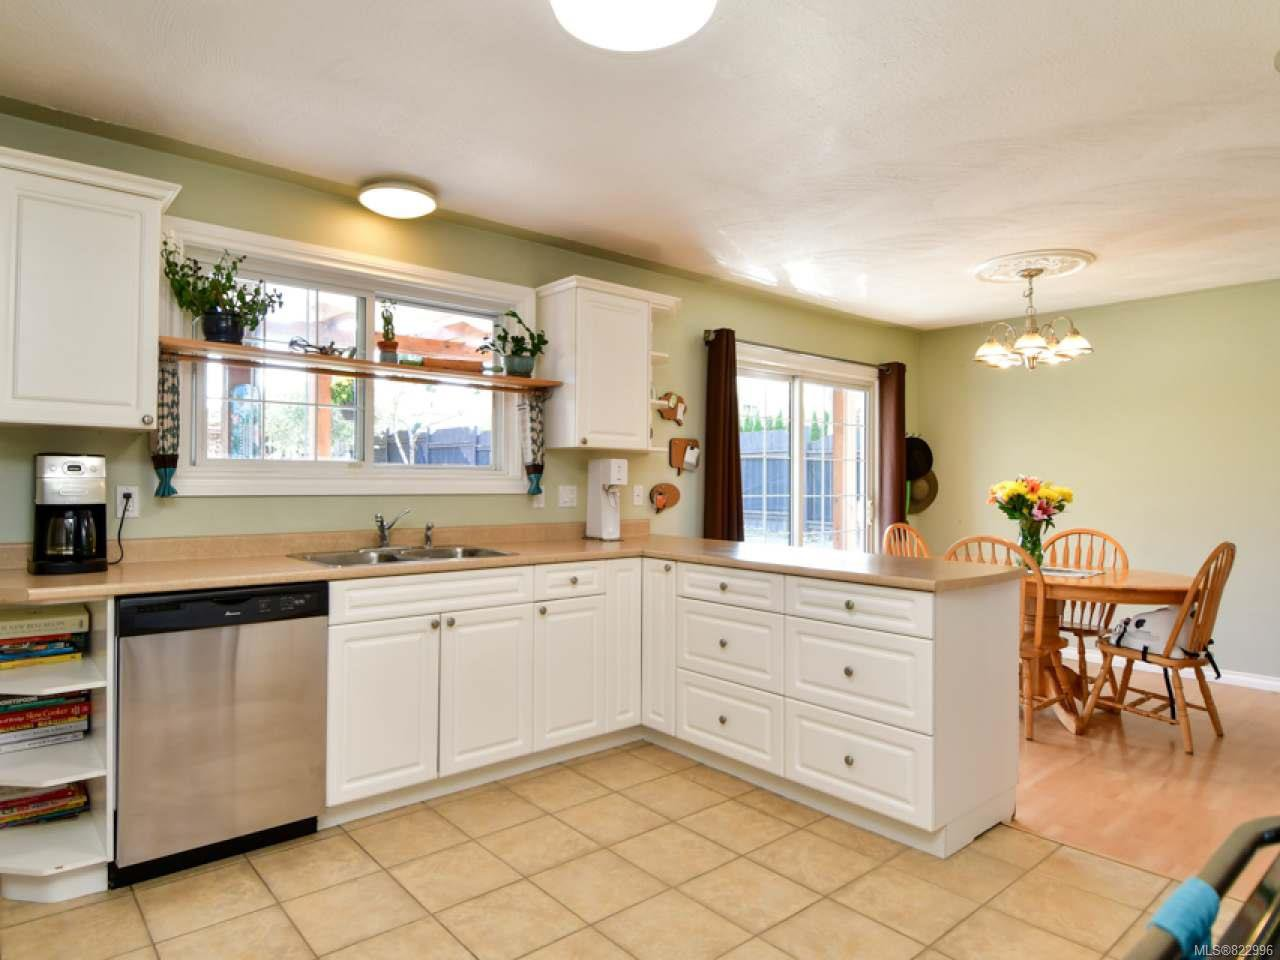 Photo 13: Photos: 691 Holm Rd in CAMPBELL RIVER: CR Willow Point House for sale (Campbell River)  : MLS®# 822996